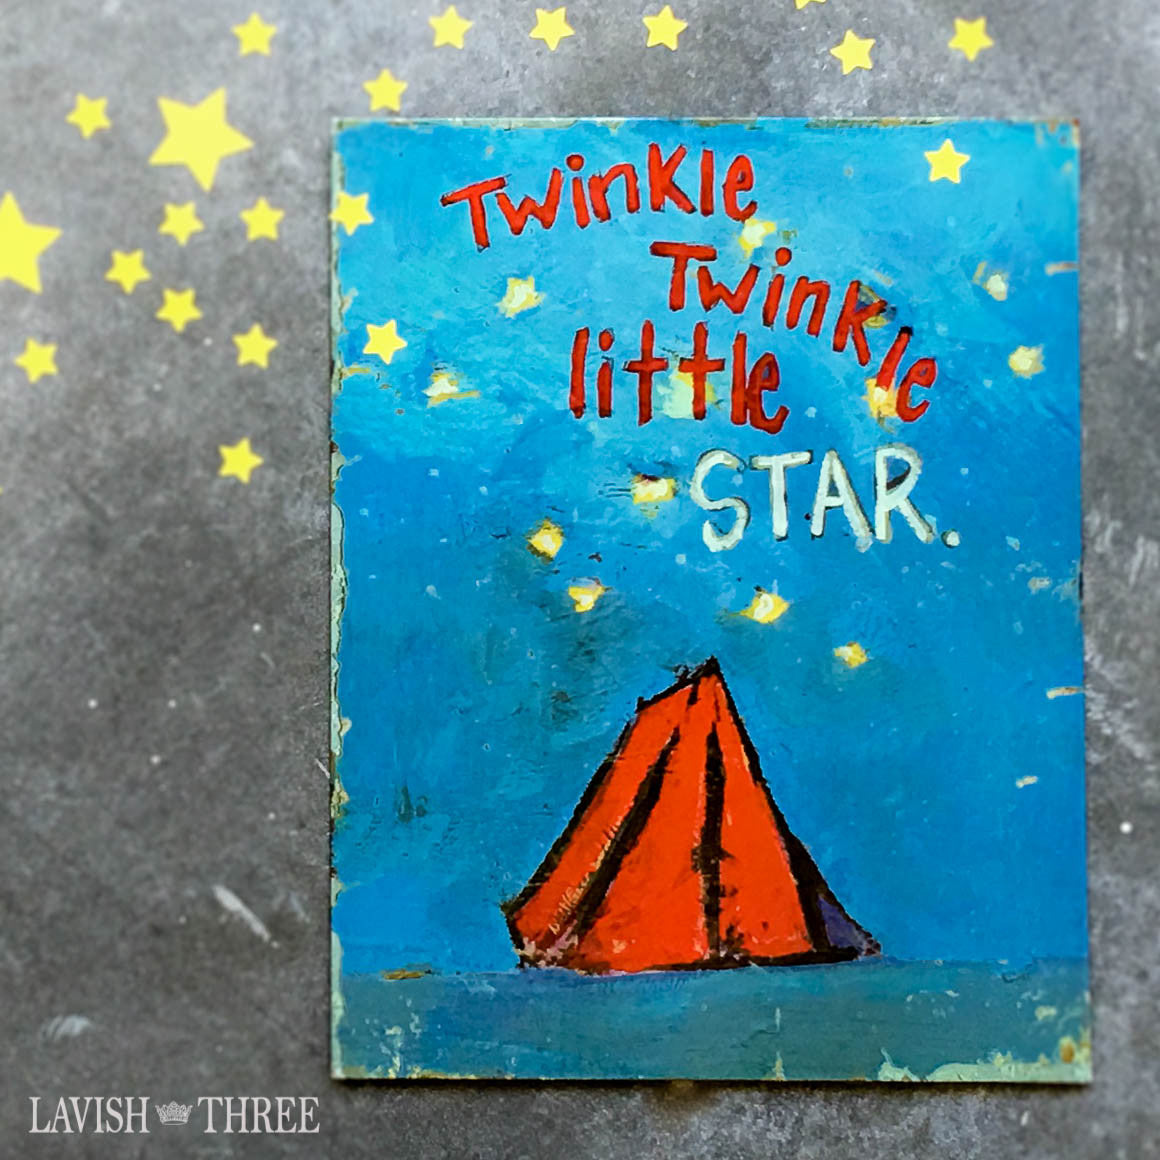 Twinkle twinkle little star tin wall art sign childs room nursery decor